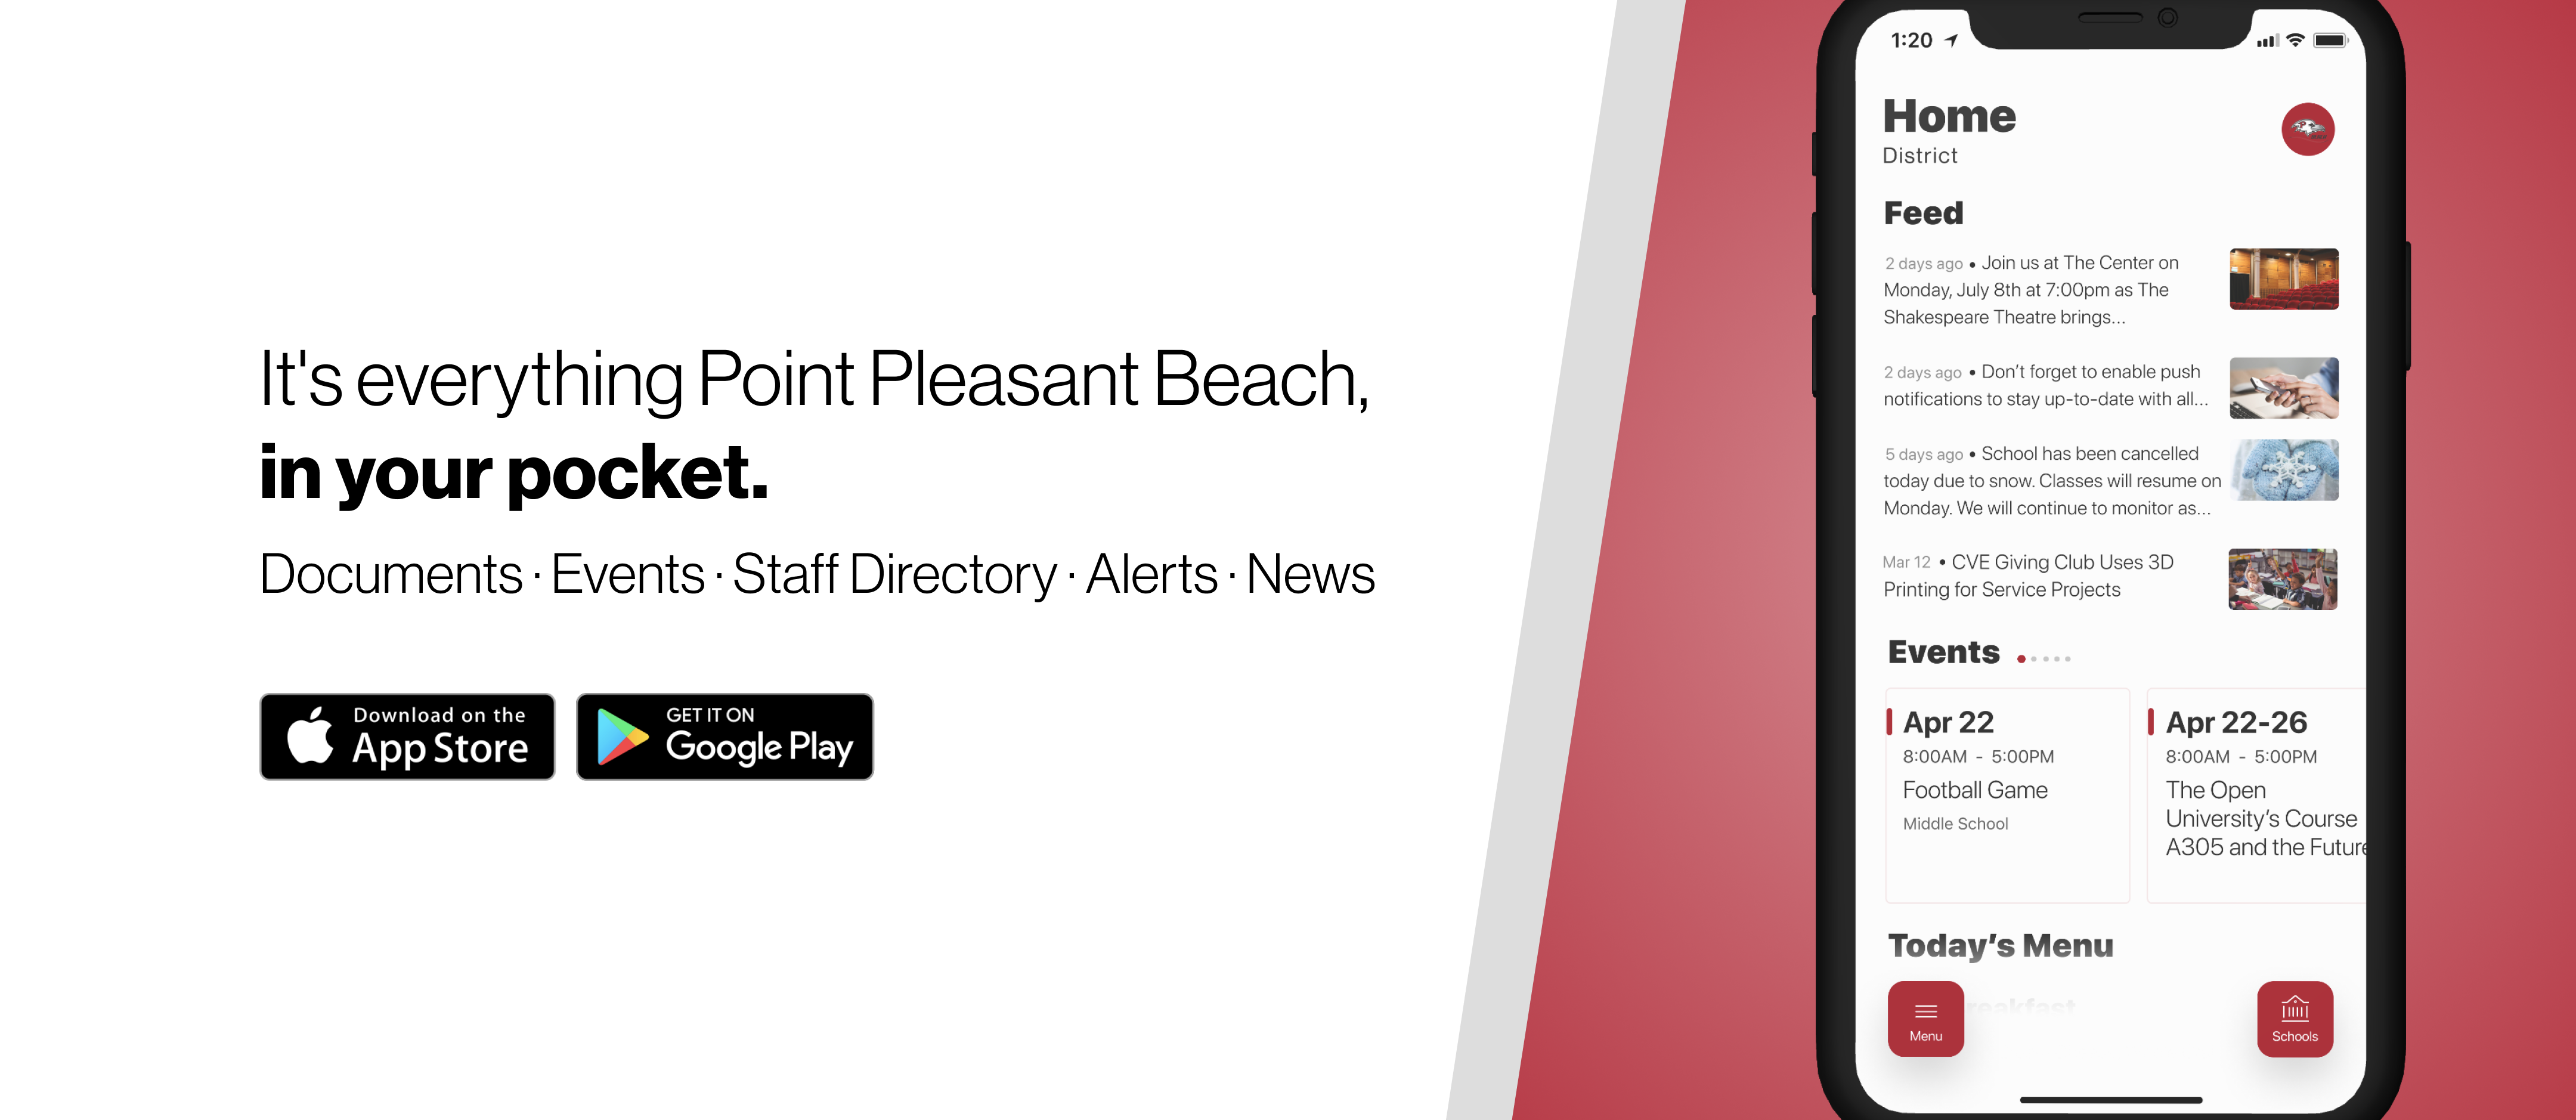 It's everything Point Pleasant Beach, in your pocket. Download our app the App Store or Google Play